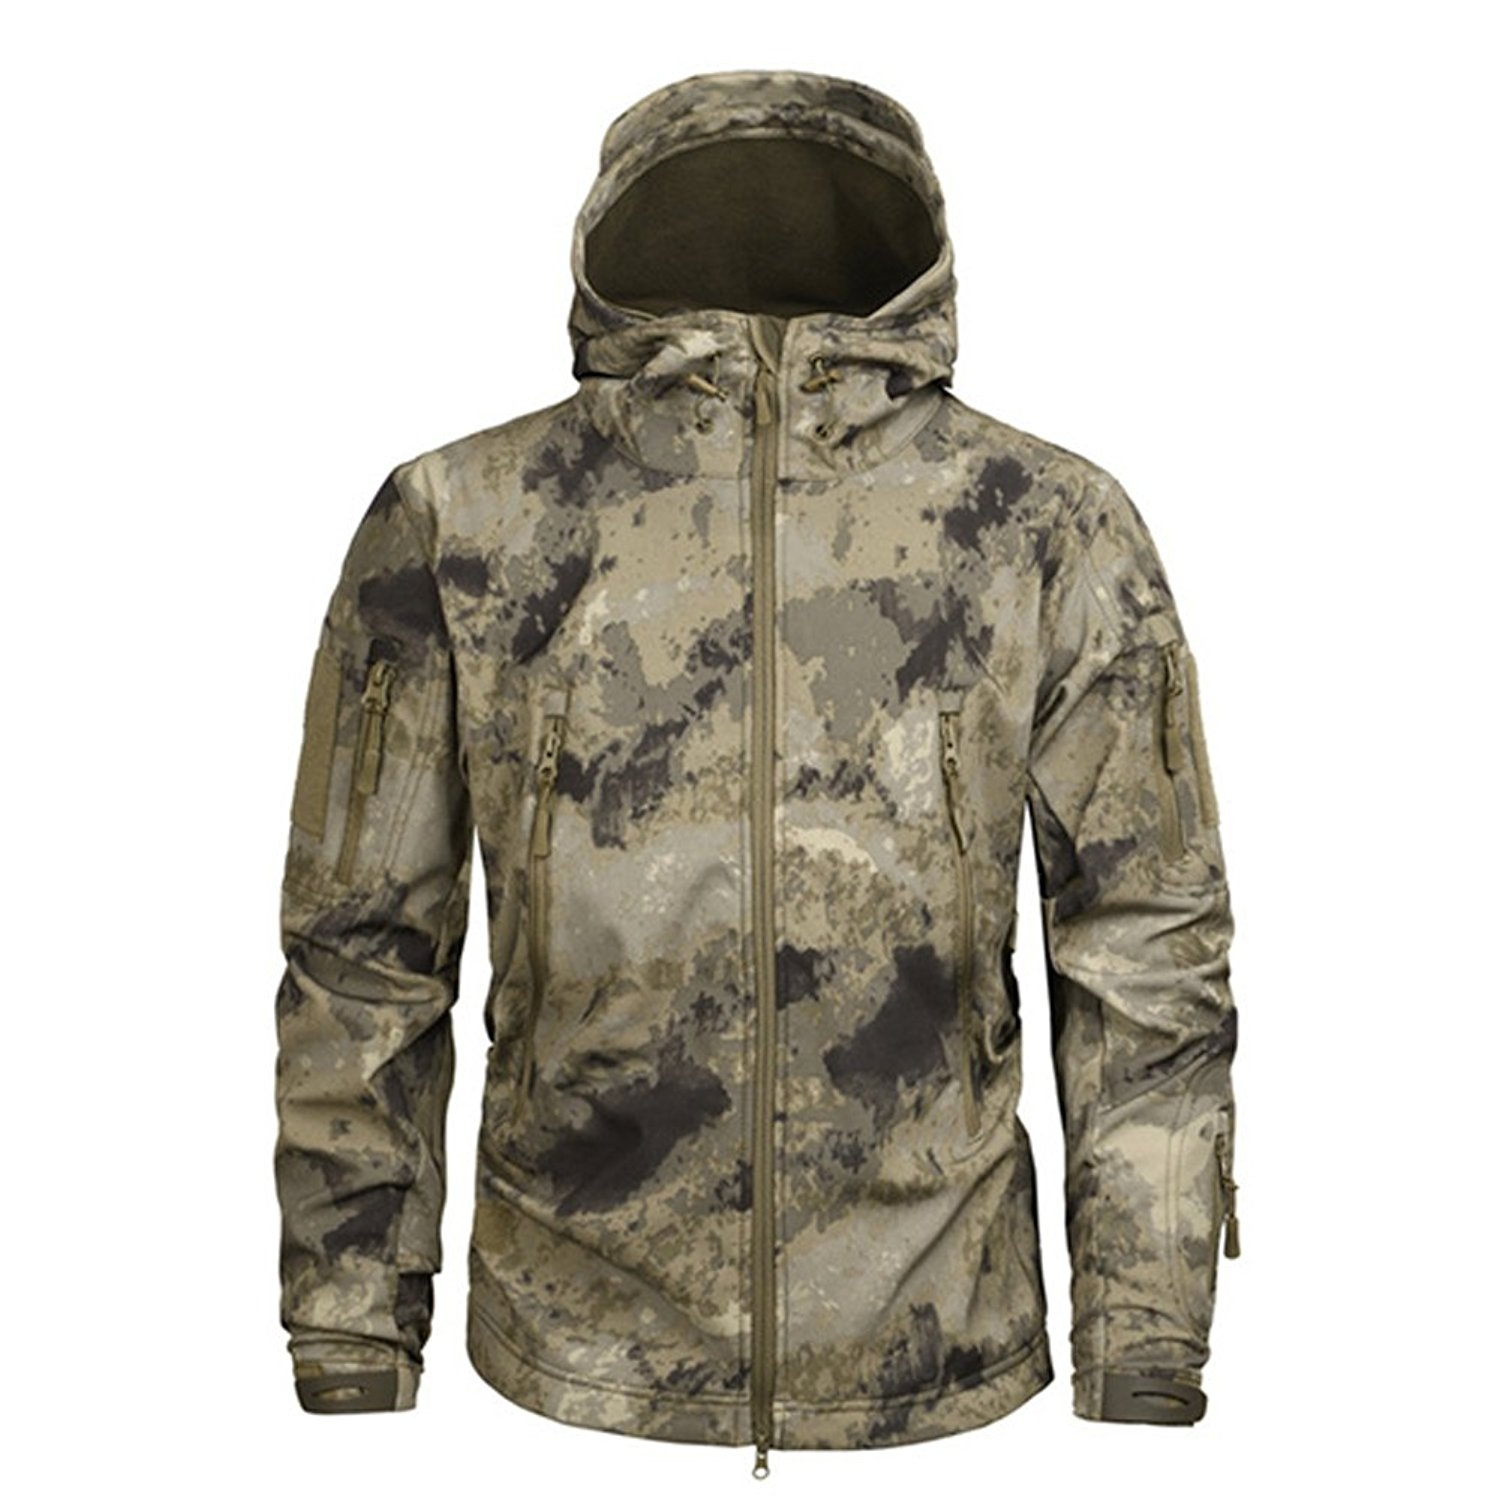 8a08bda1c409 Clothing Men Military Jacket US Army Tactical Sharkskin Softshell Autumn  Winter Outerwear Camouflage Jacket and Coat